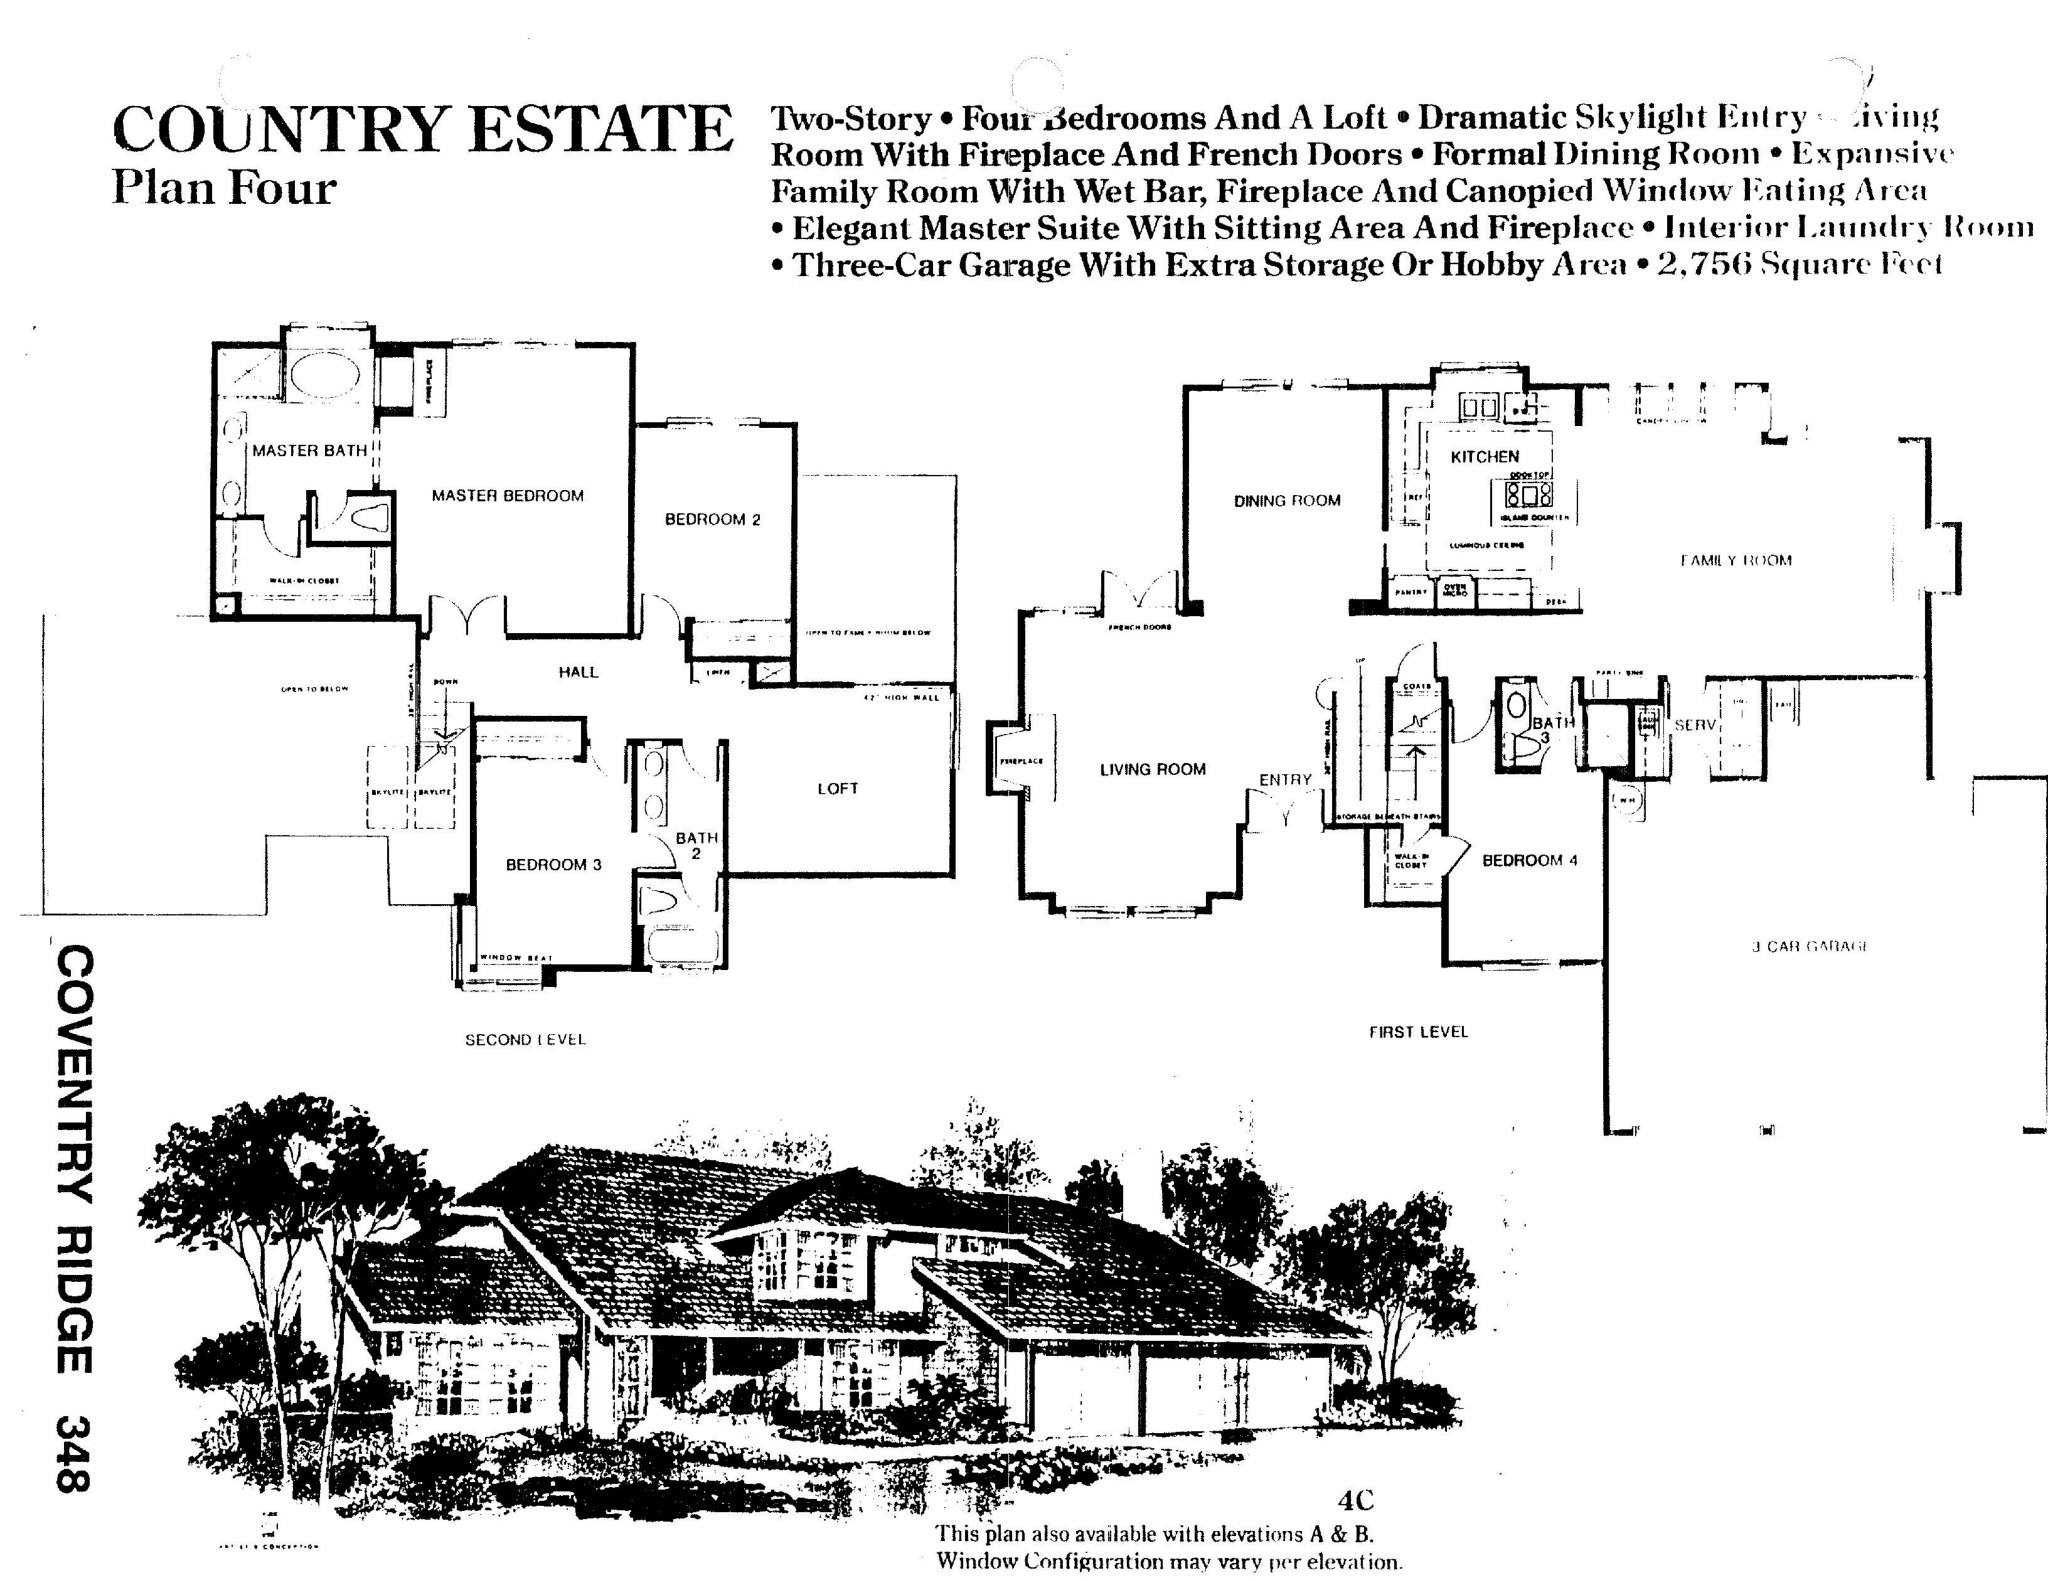 Coventry Ridge - Country Estate - Plan Four